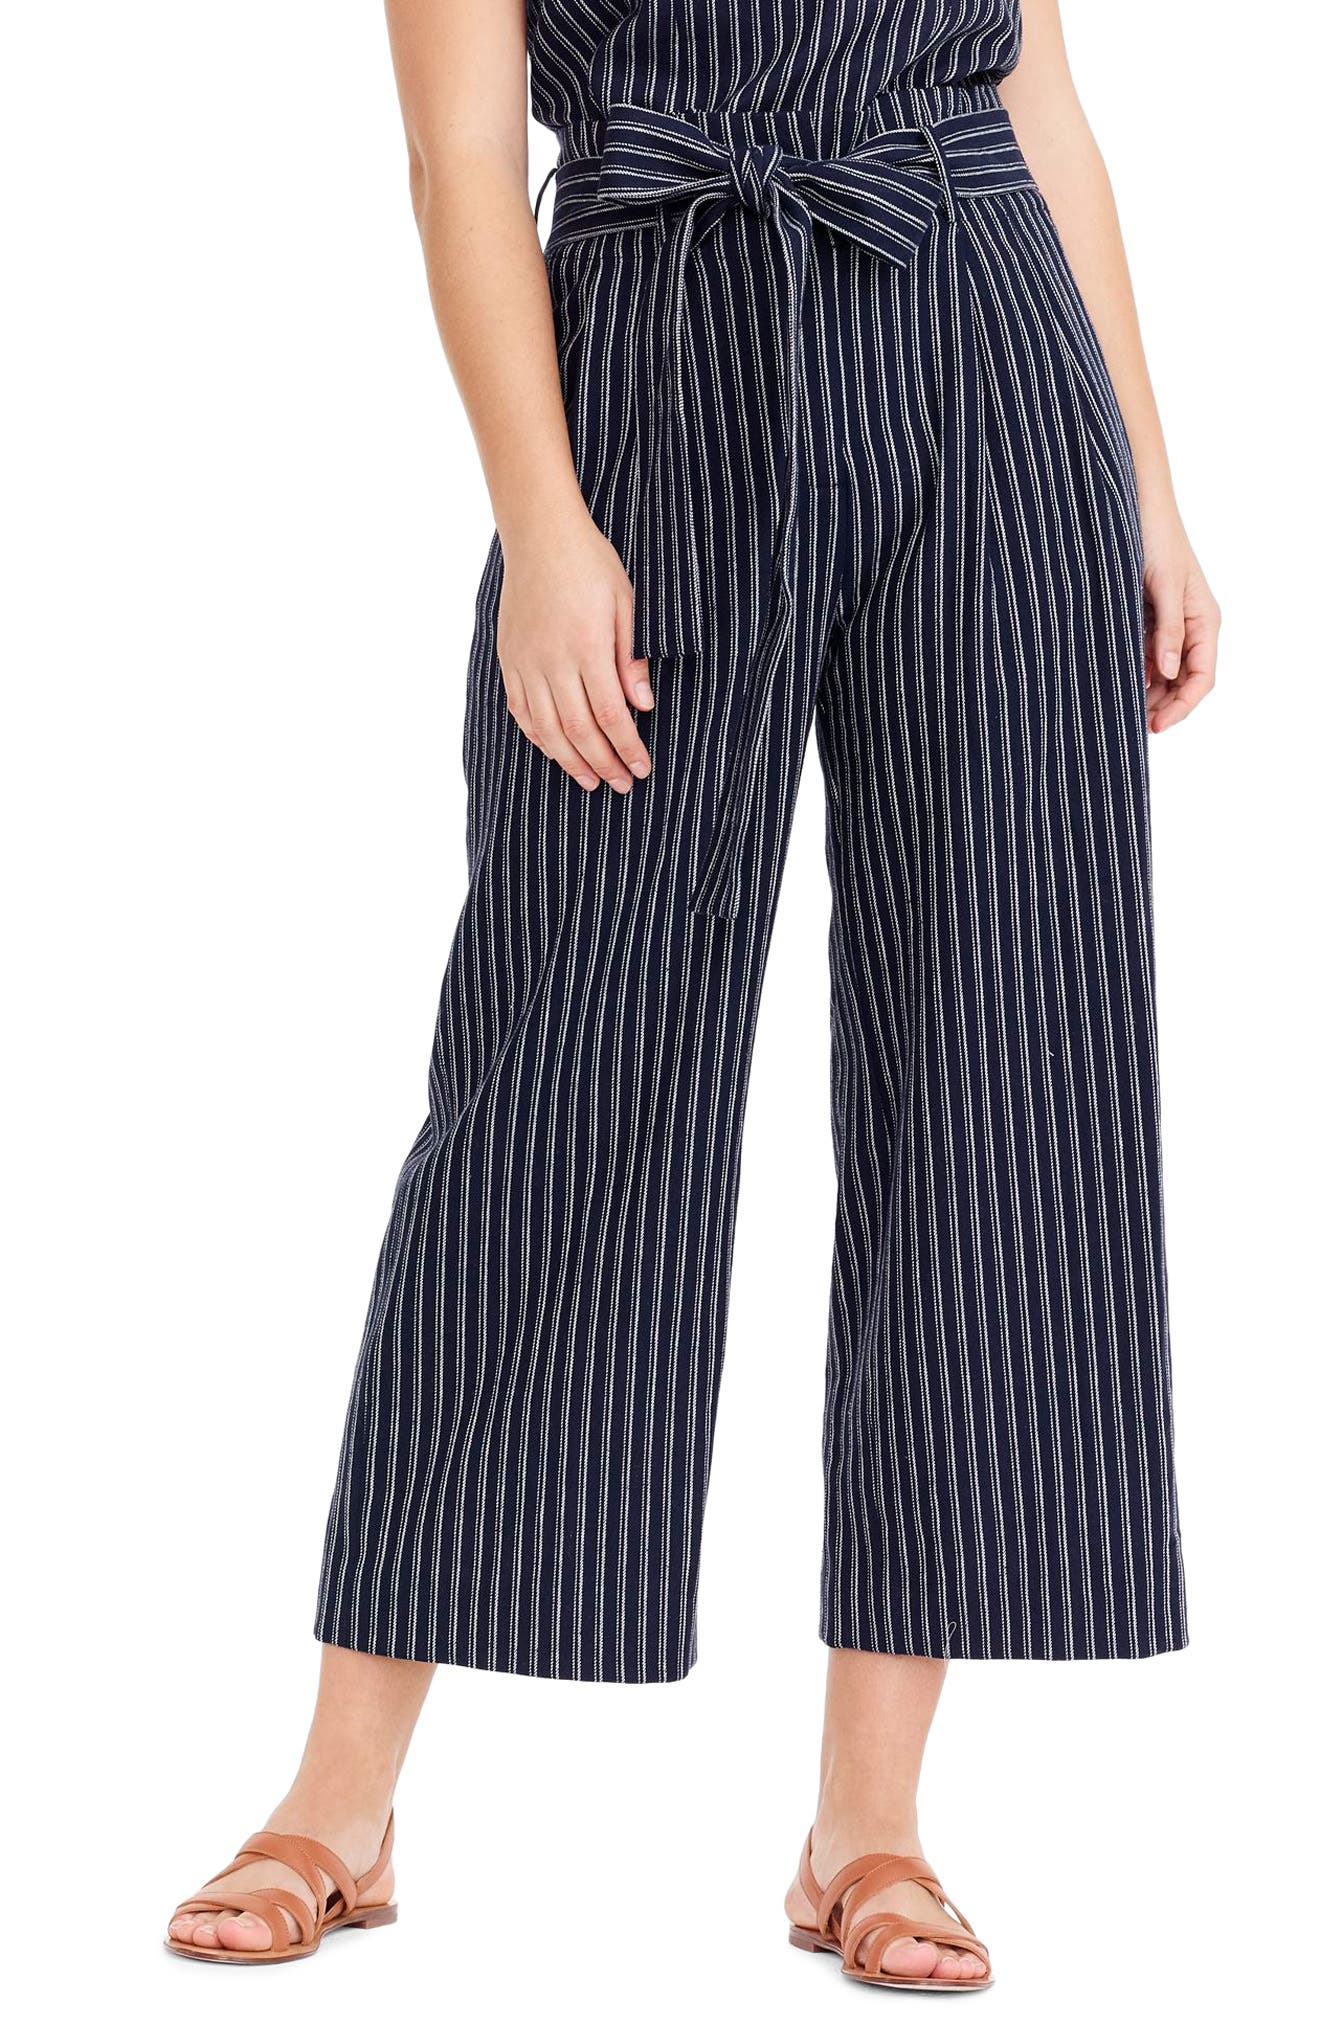 Point Sur Paperbag Pants,                             Main thumbnail 1, color,                             Navy White Stripe